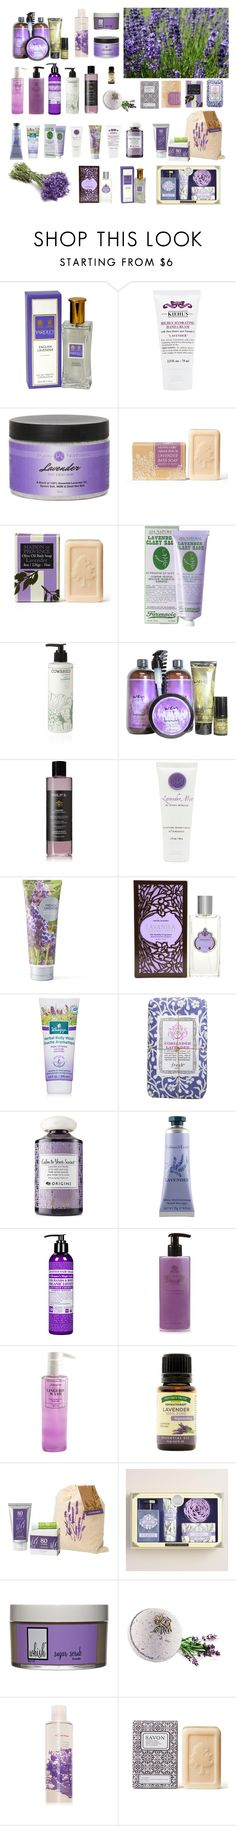 """Lavender Beauty Products"" by dezaval ❤ liked on Polyvore featuring beauty, Yardley London, Kiehl's, Soap & Paper Factory, Cowshed, Philip B, Niven Morgan, Simple Pleasures, Lavanila and Kneipp"